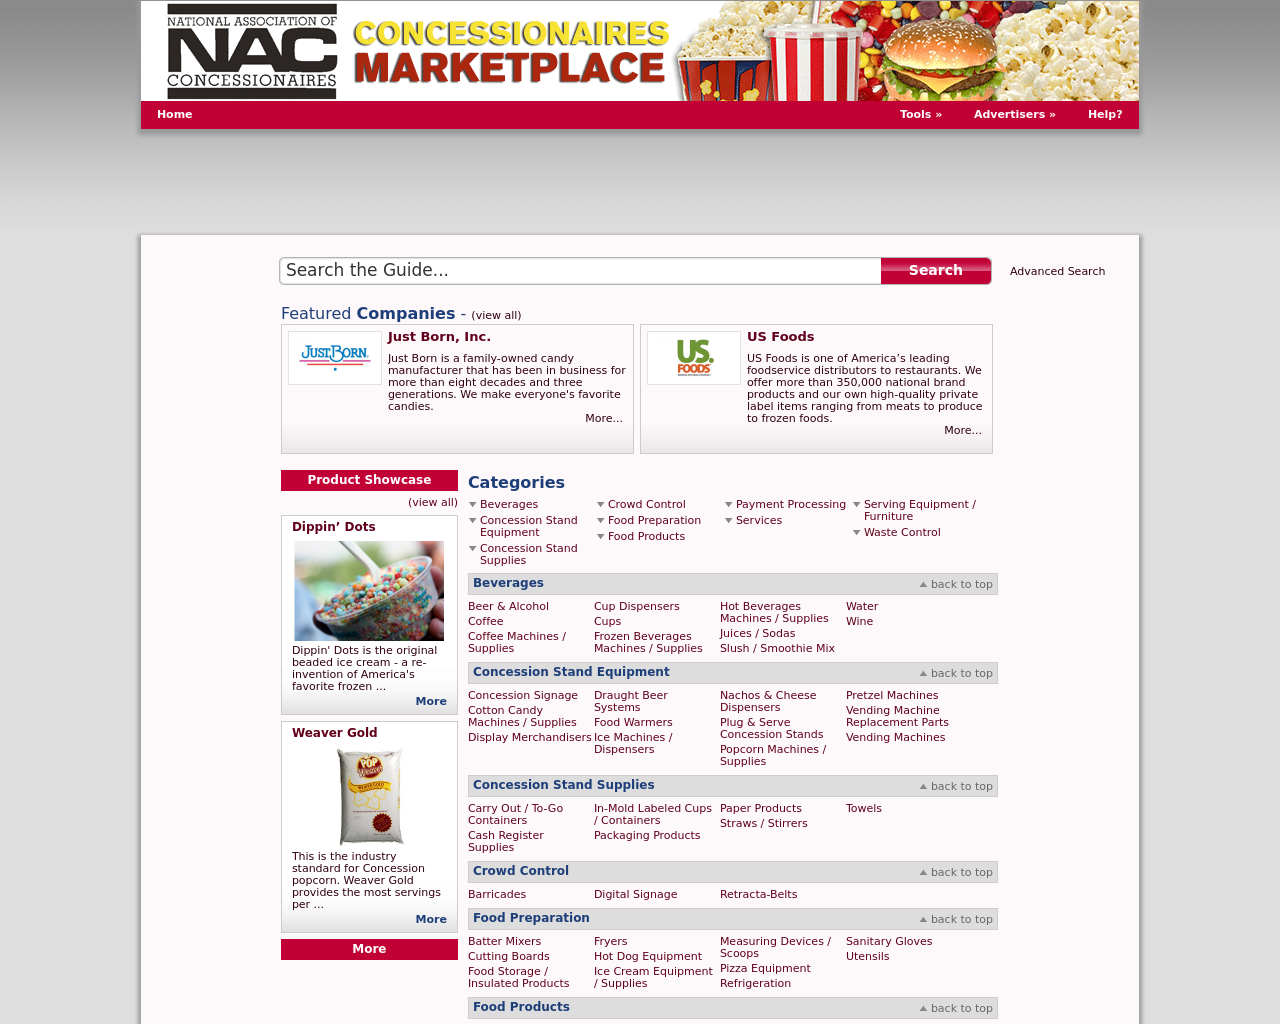 Concessionaires-Marketplace-Advertising-Reviews-Pricing